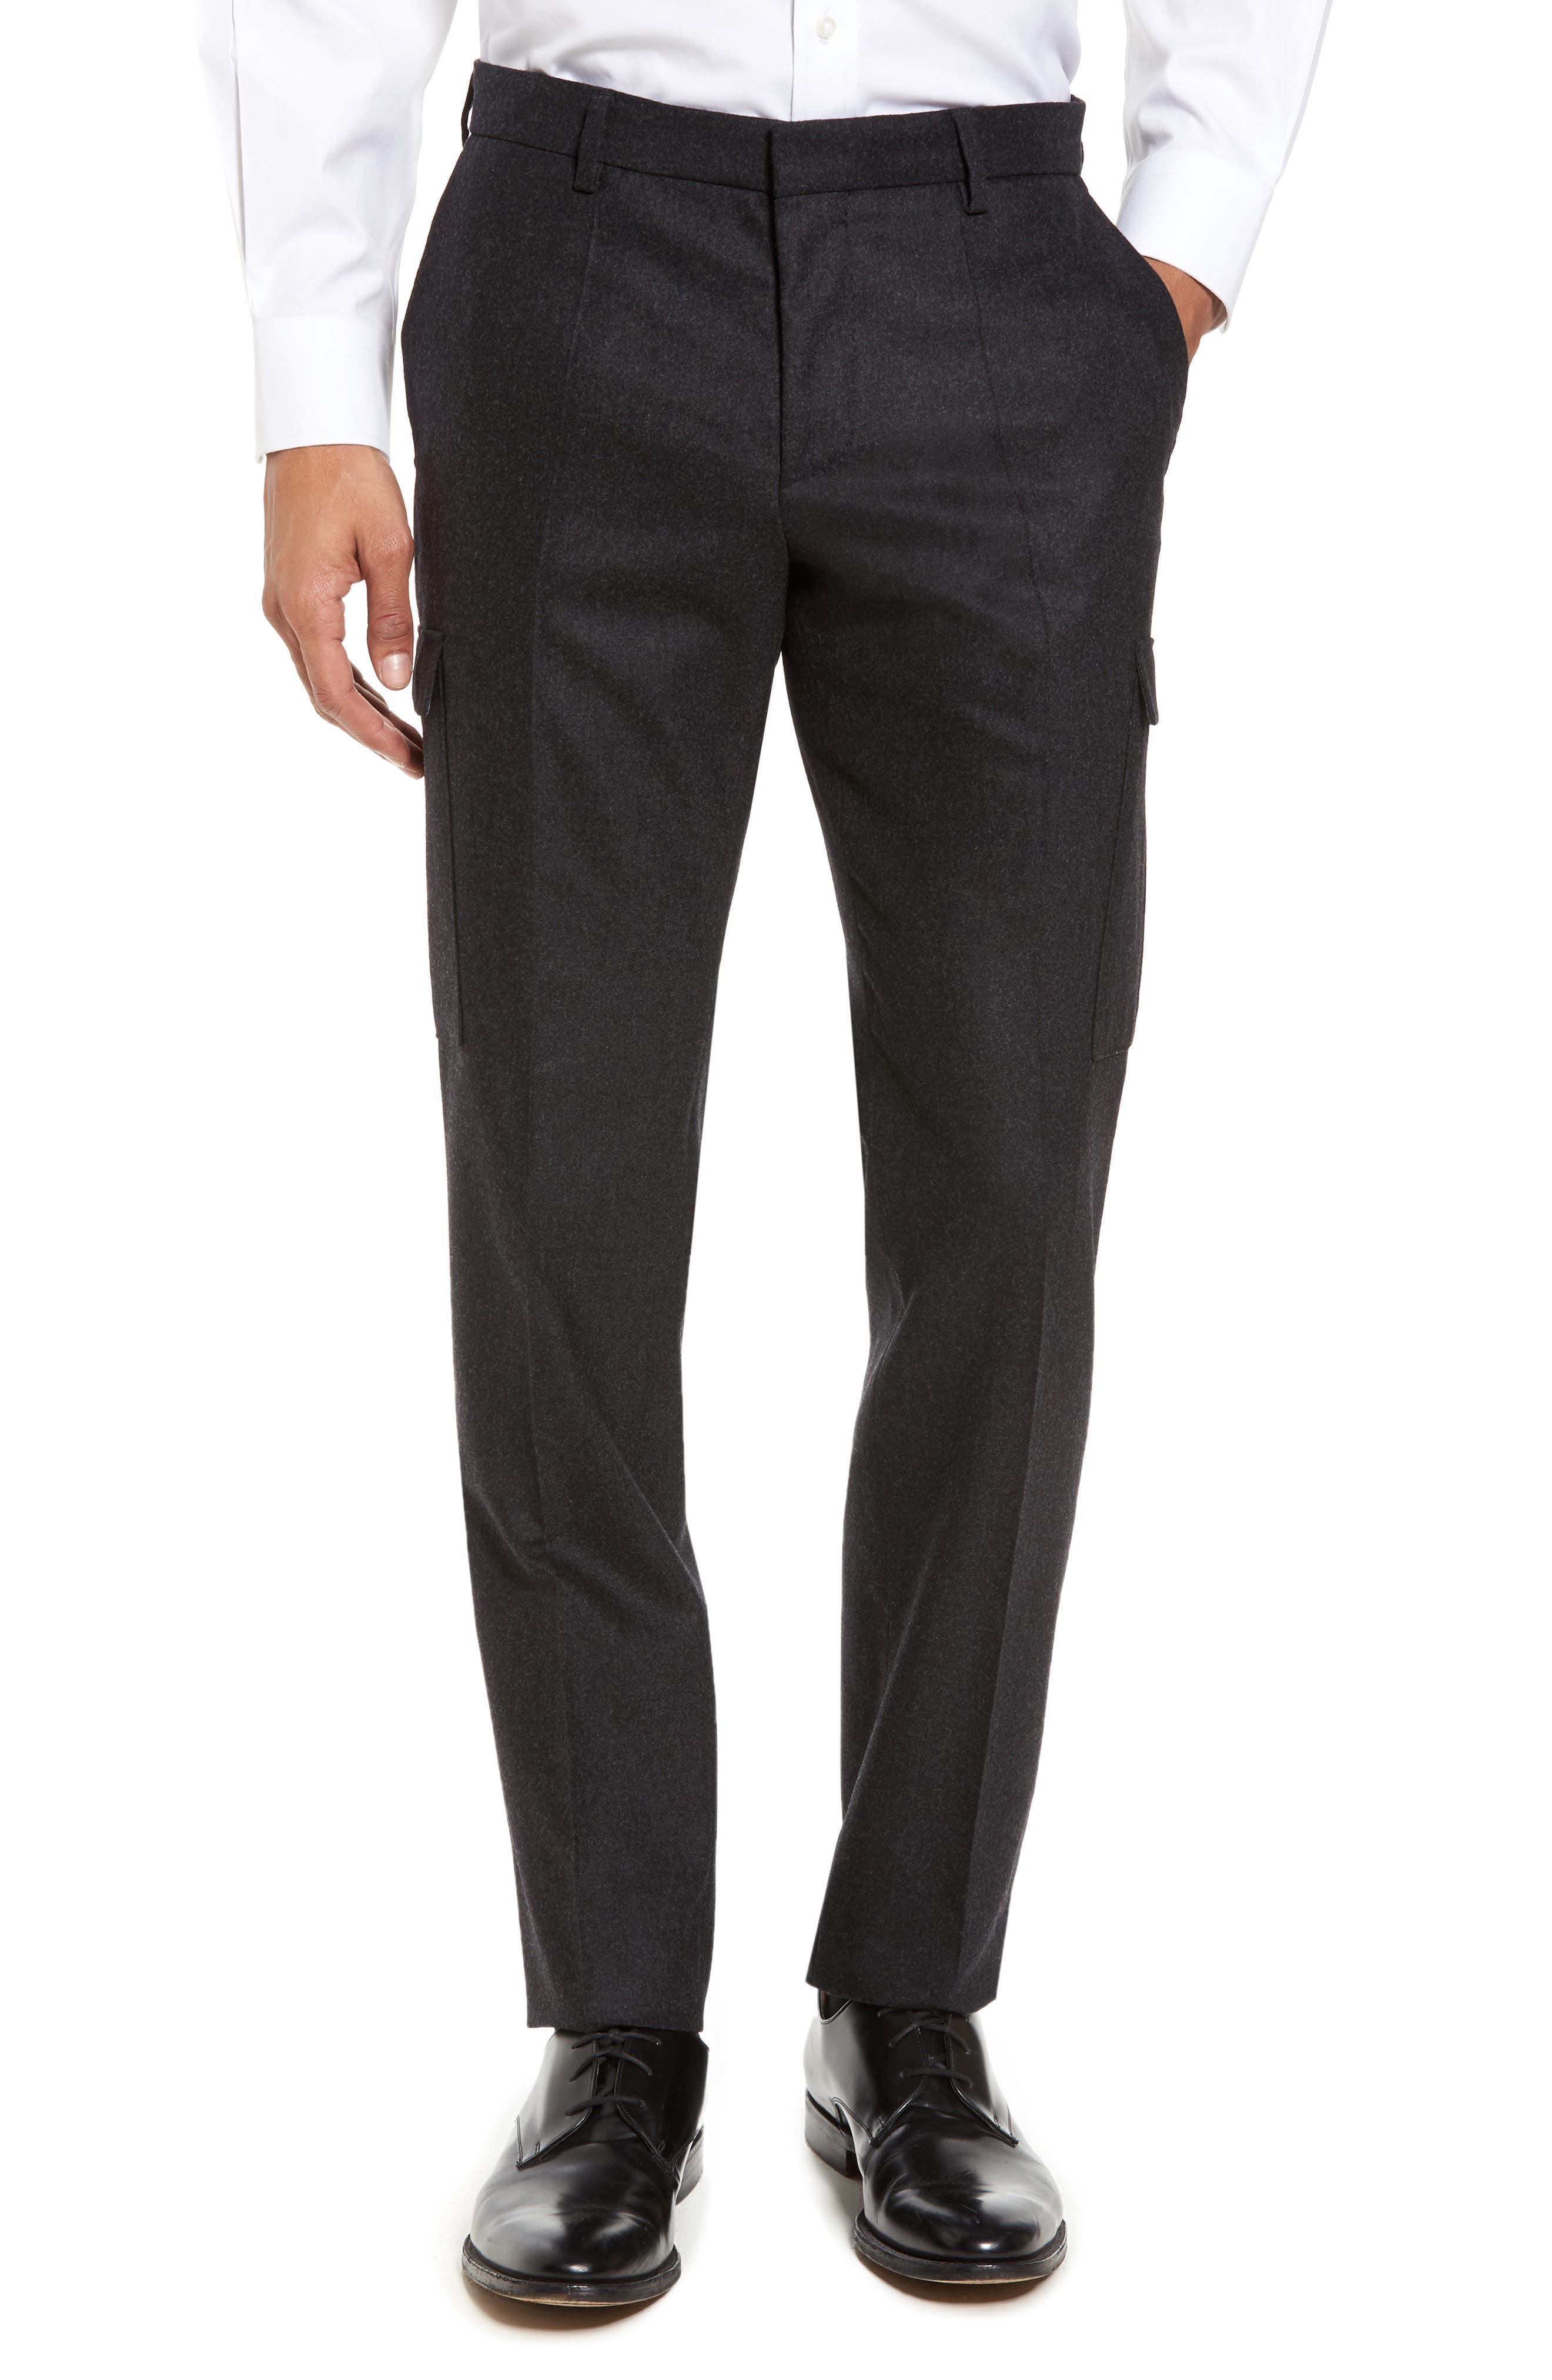 Balour Flat Front Stretch Solid Wool & Cashmere Cargo Trousers,                         Main,                         color, Dark Grey